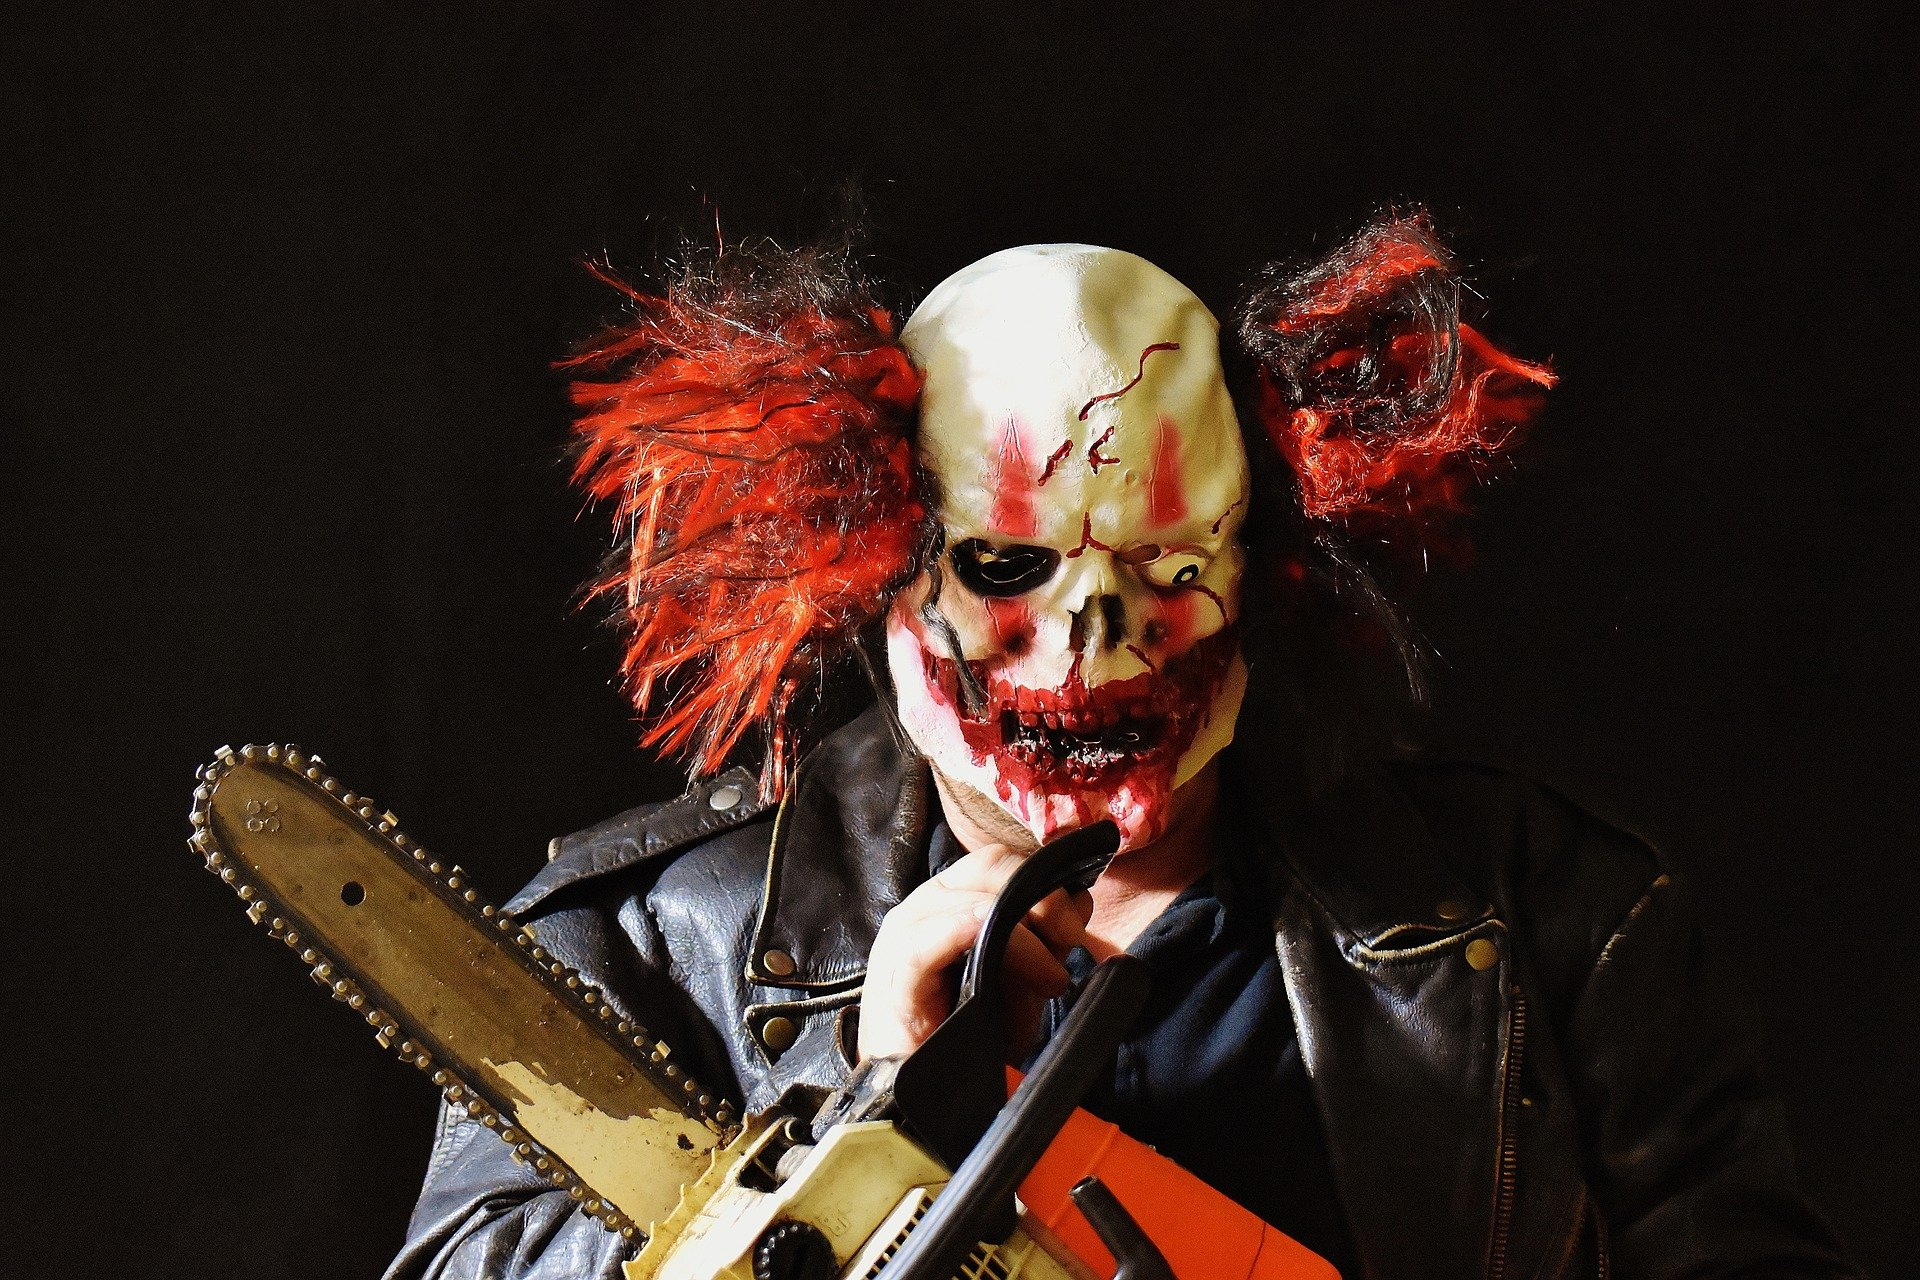 Clown with chainsaw